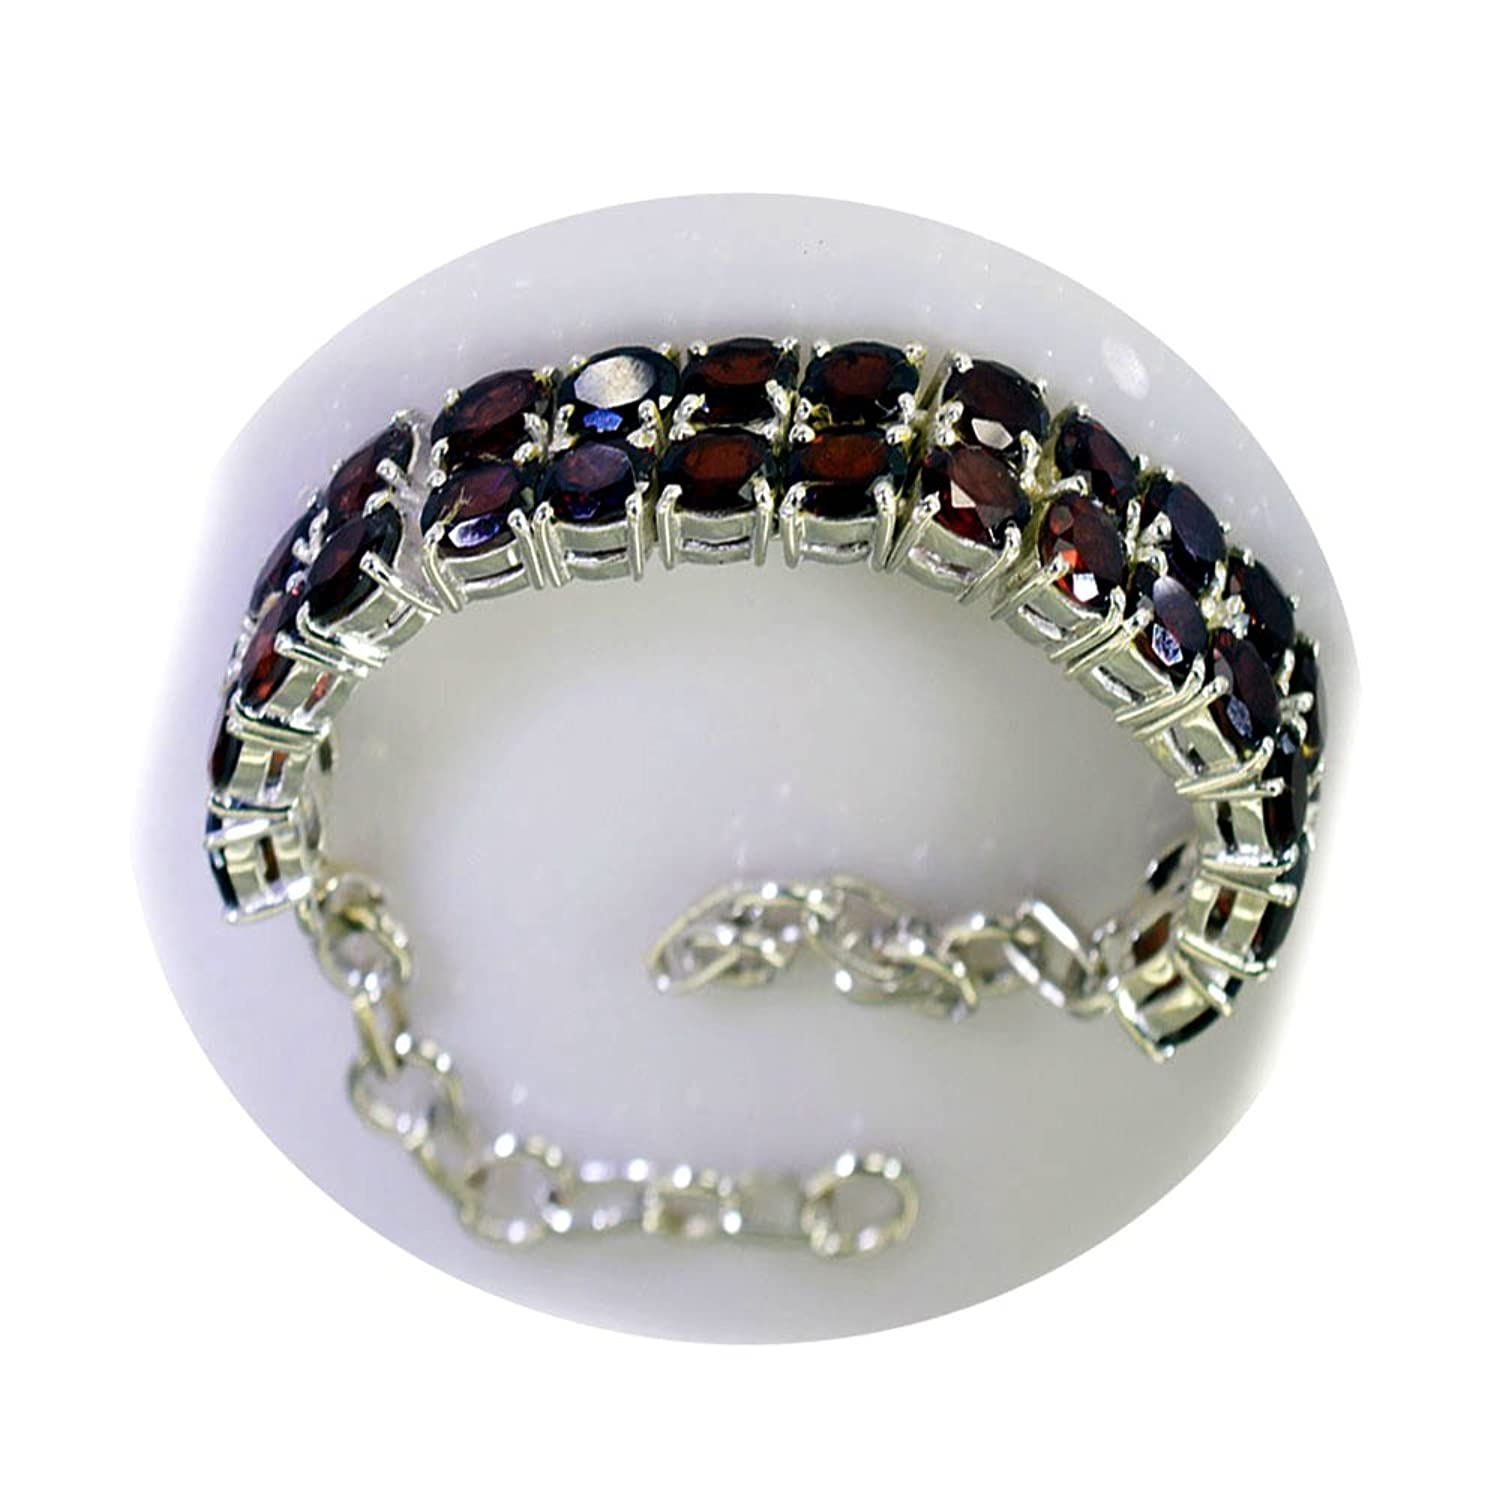 in fashion accessories source jewelry silver gifts root hallmark and image sterling january birthstone bracelet